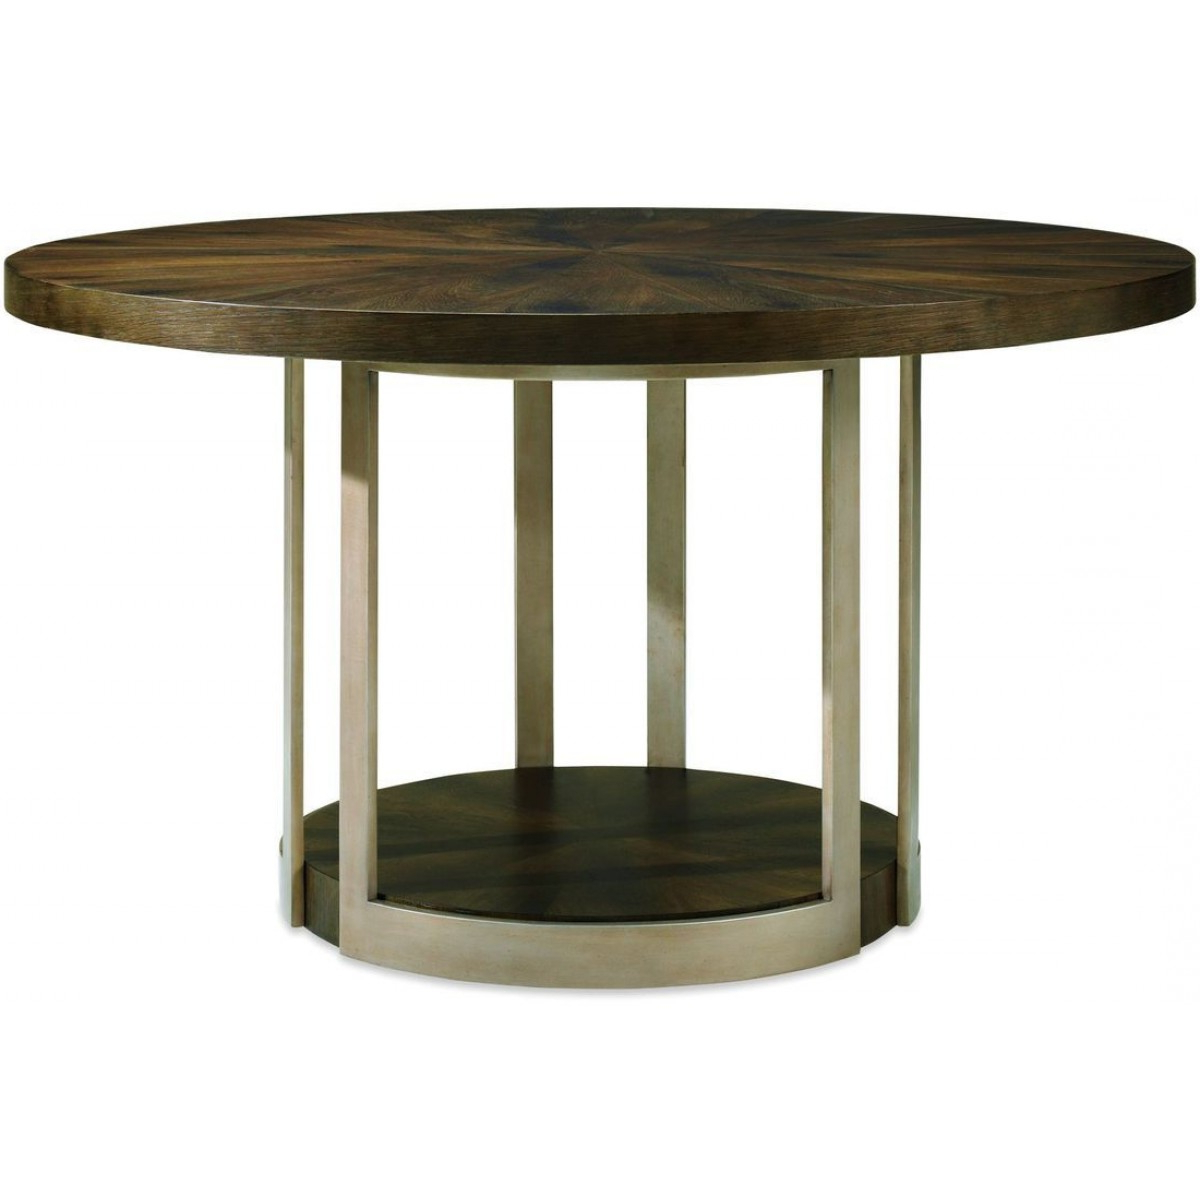 Caracole Modern Artisans Gather Round Dining Table, Dark Fumed Oak With Trendy Fumed Oak Dining Tables (View 7 of 30)